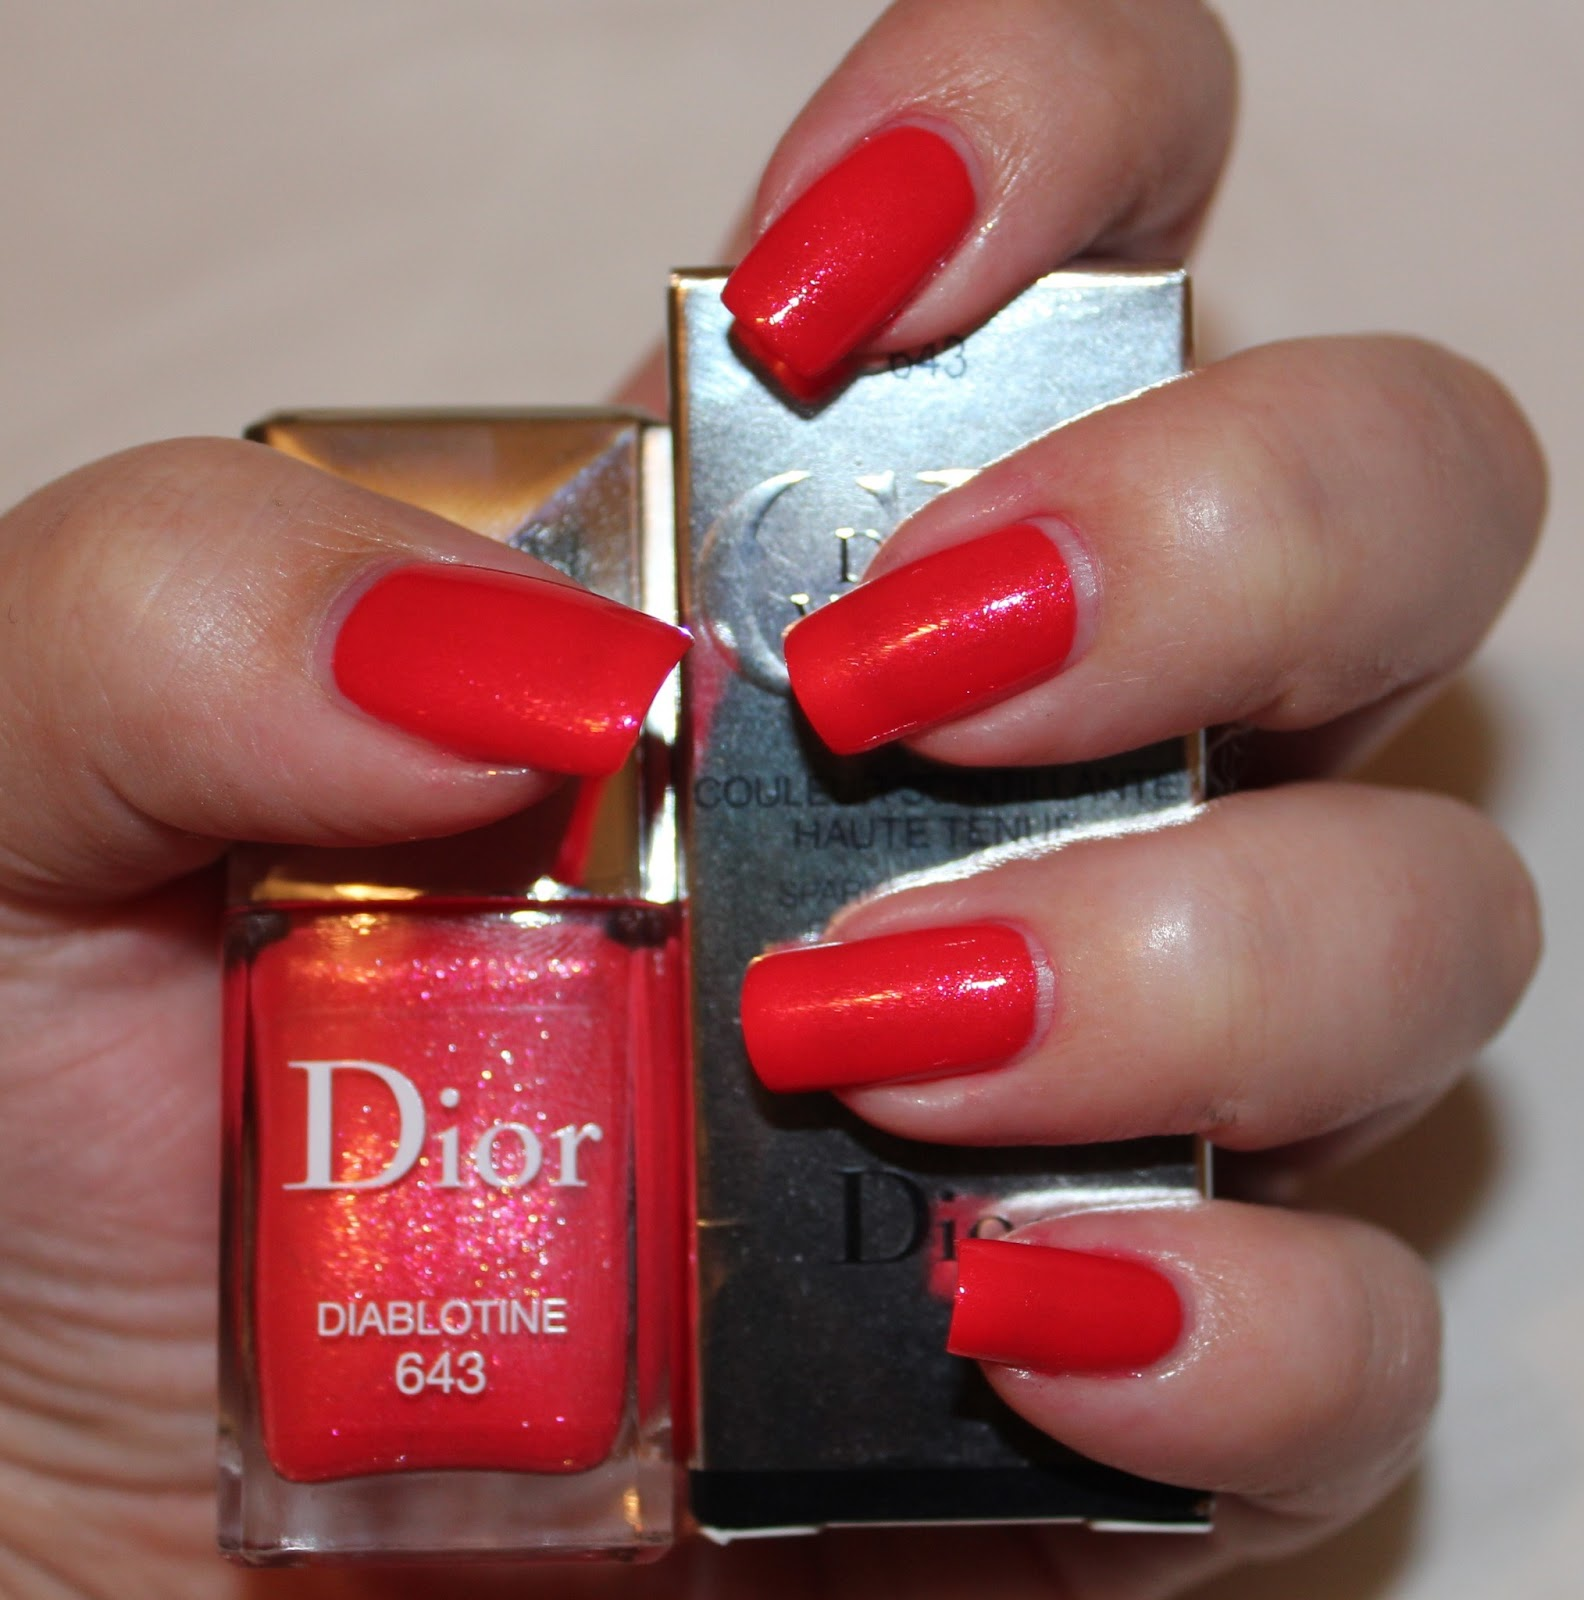 Dior Addict Gloss 643 Diablotine,dior,vernis,diablotine,dior addict gloss, dior addict gloss collection swatches,dior swatch,red,red nails,dior nails,